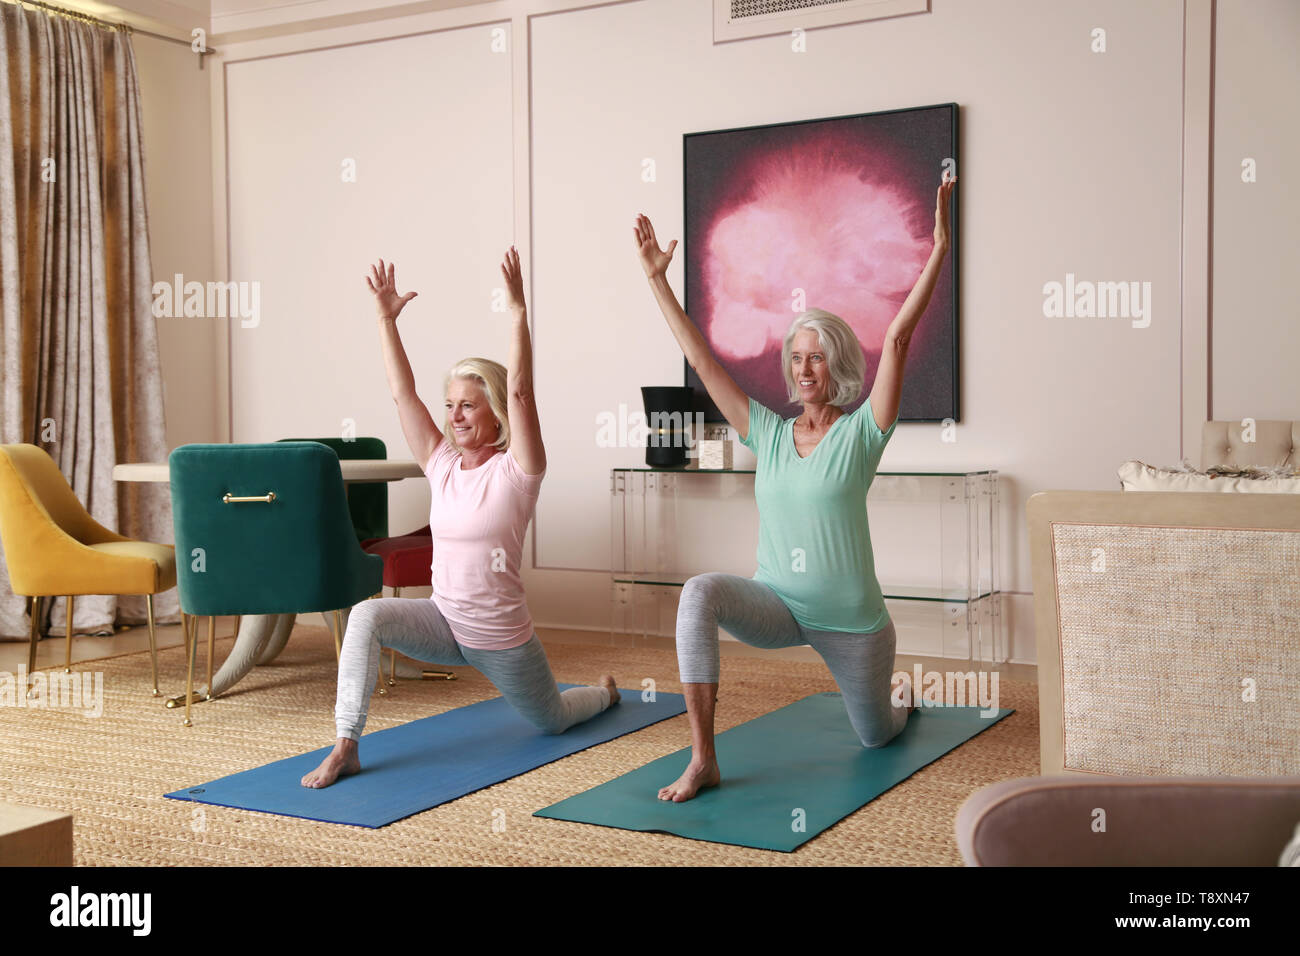 San Diego, CALIFORNIA, USA. 9th Nov, 2018. November 9, 2018 - San Diego, California, USA - Two women do yoga in a home in San Diego. Credit: KC Alfred/ZUMA Wire/Alamy Live News - Stock Image